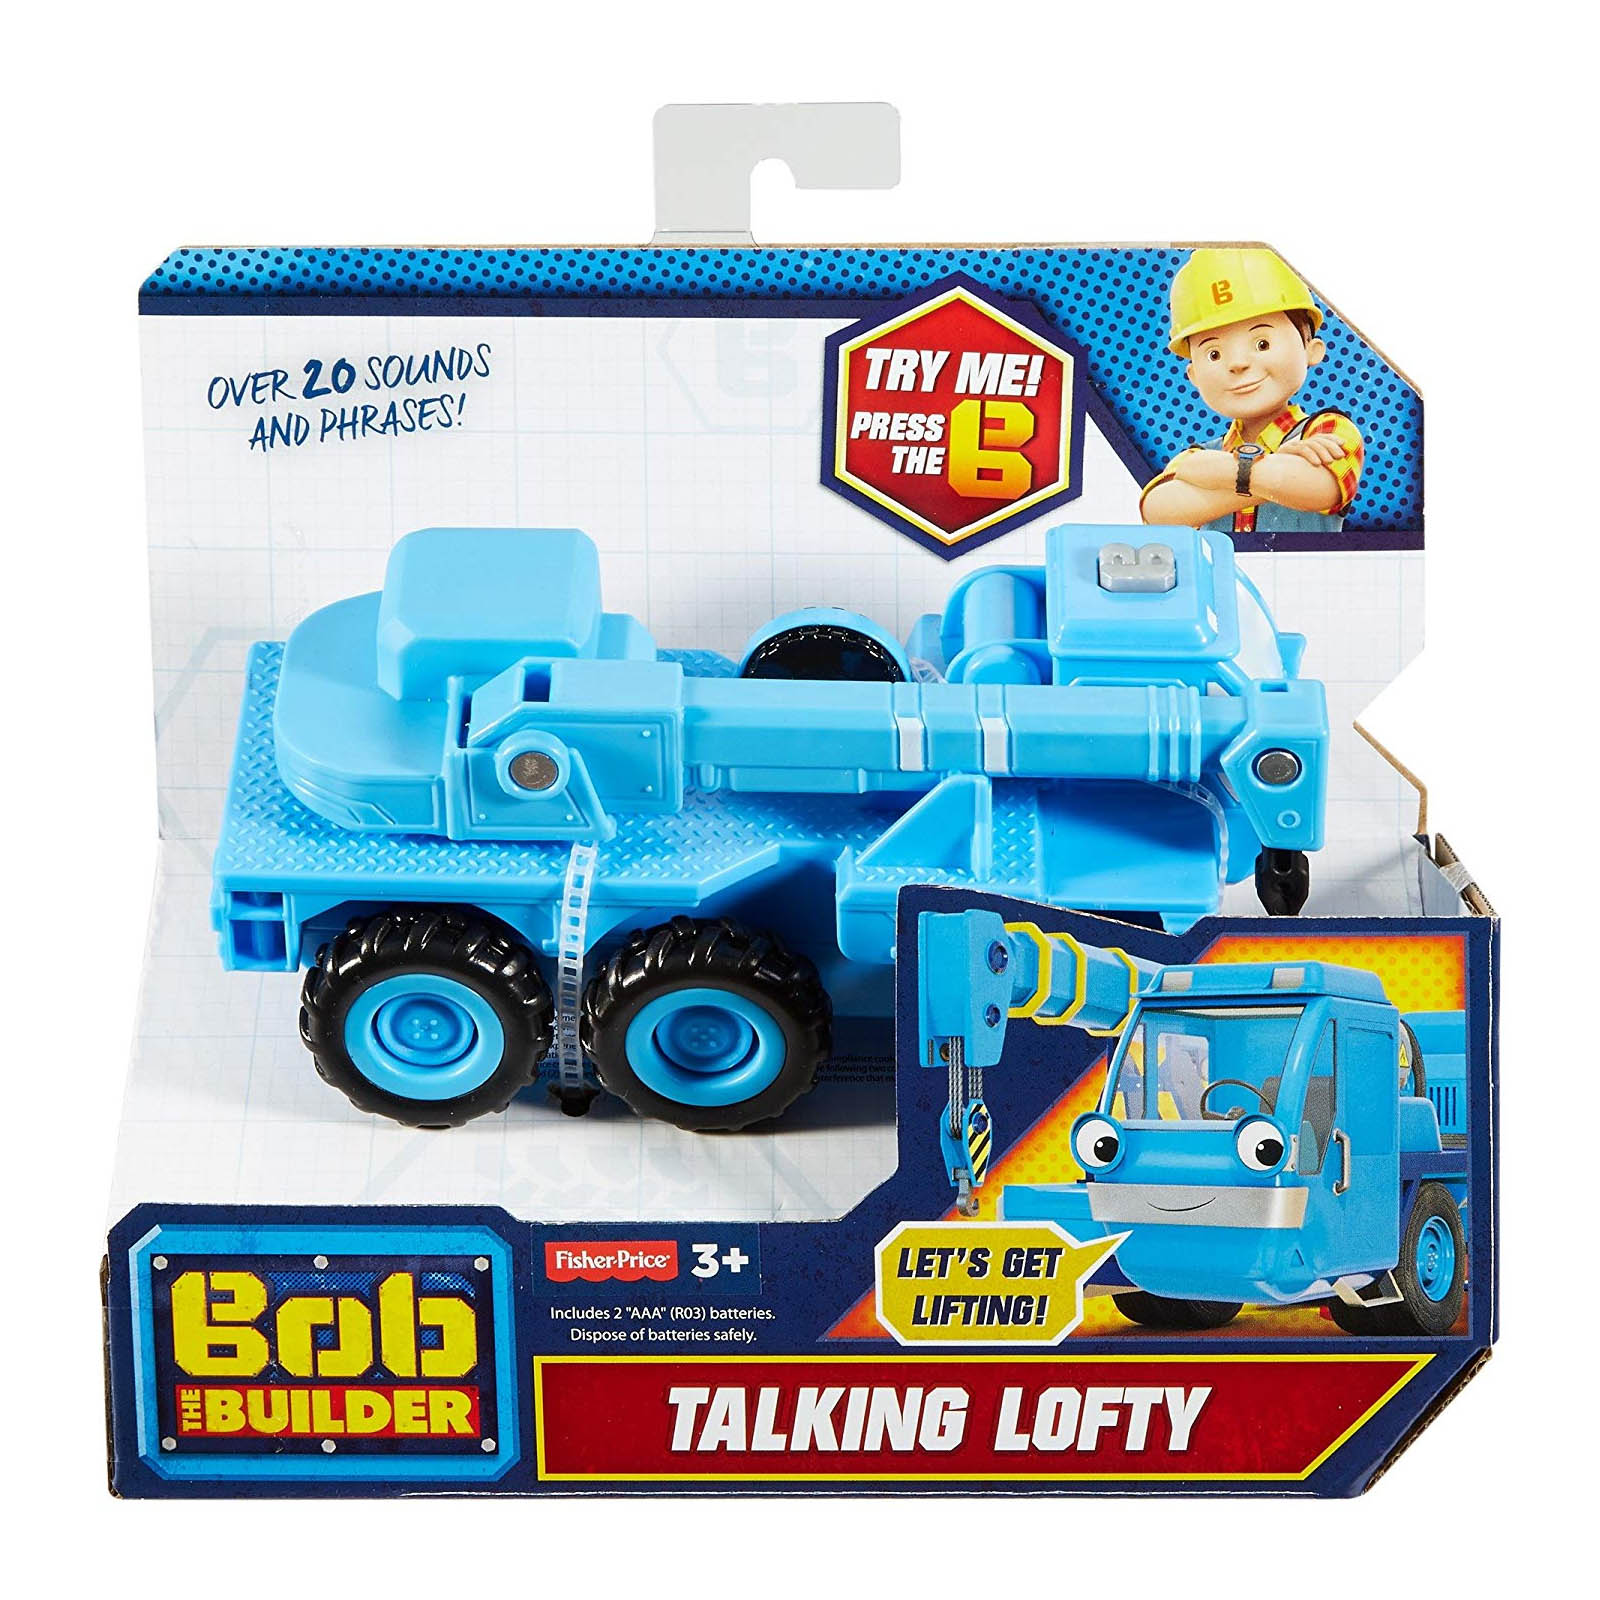 Bob The Builder Talking Lofty the Crane